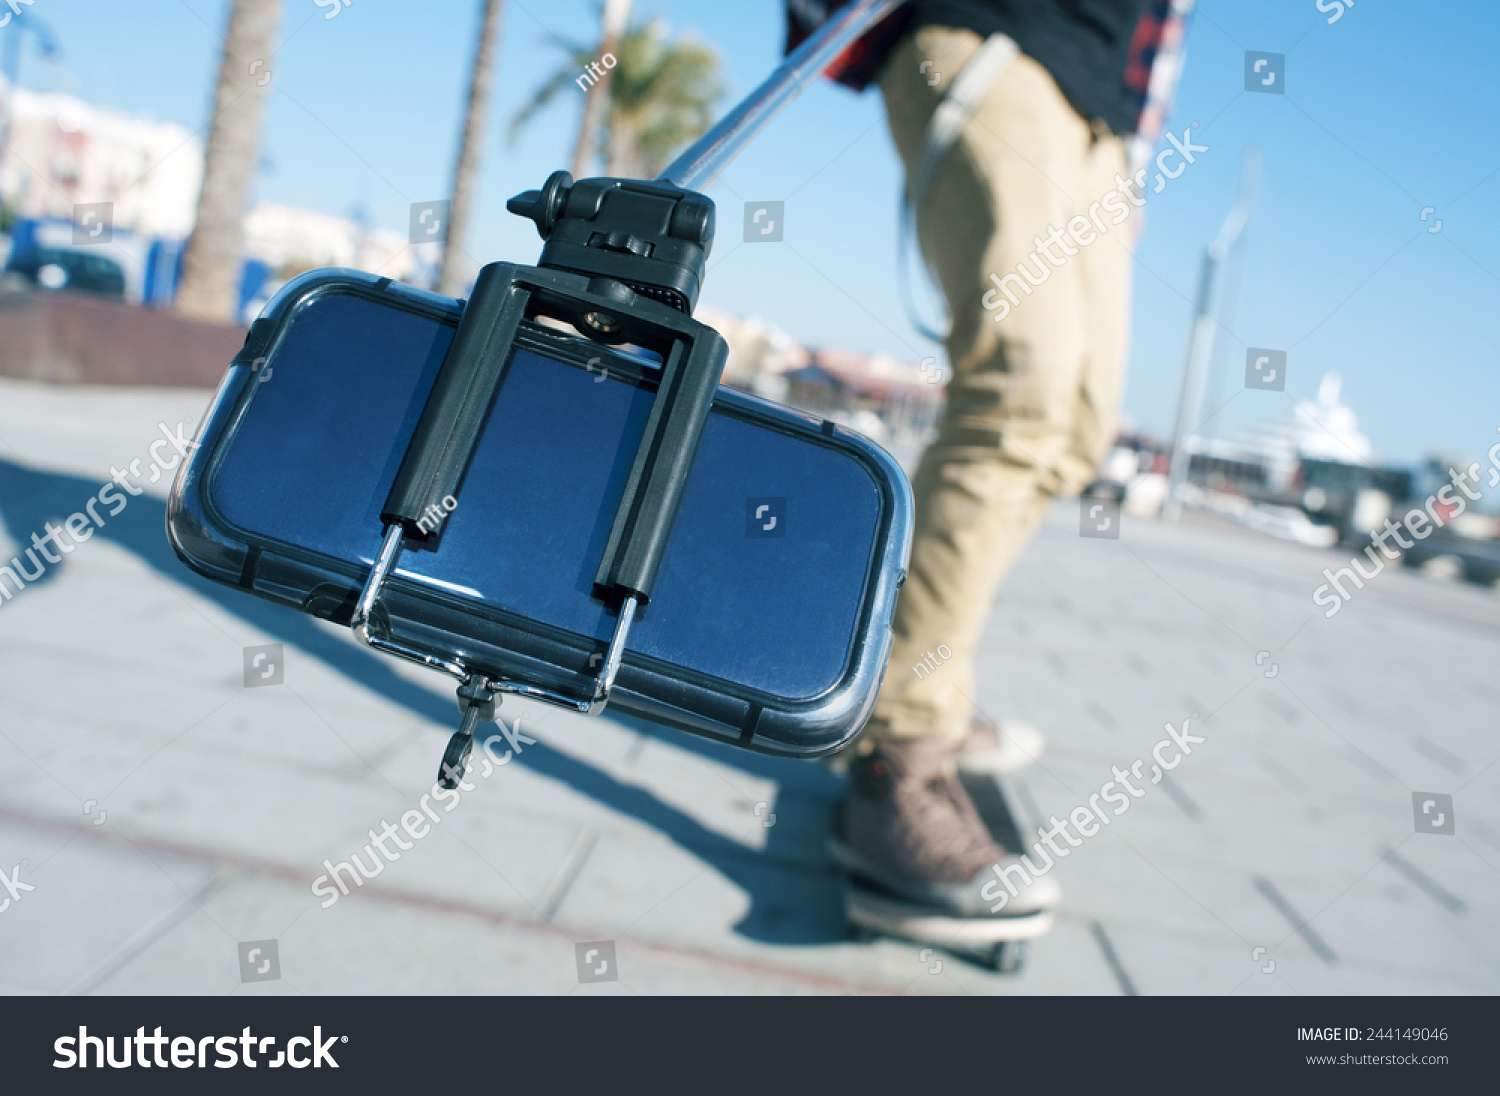 a skater taking a self portrait with a selfie stick stock photo 244149046 shutterstock. Black Bedroom Furniture Sets. Home Design Ideas